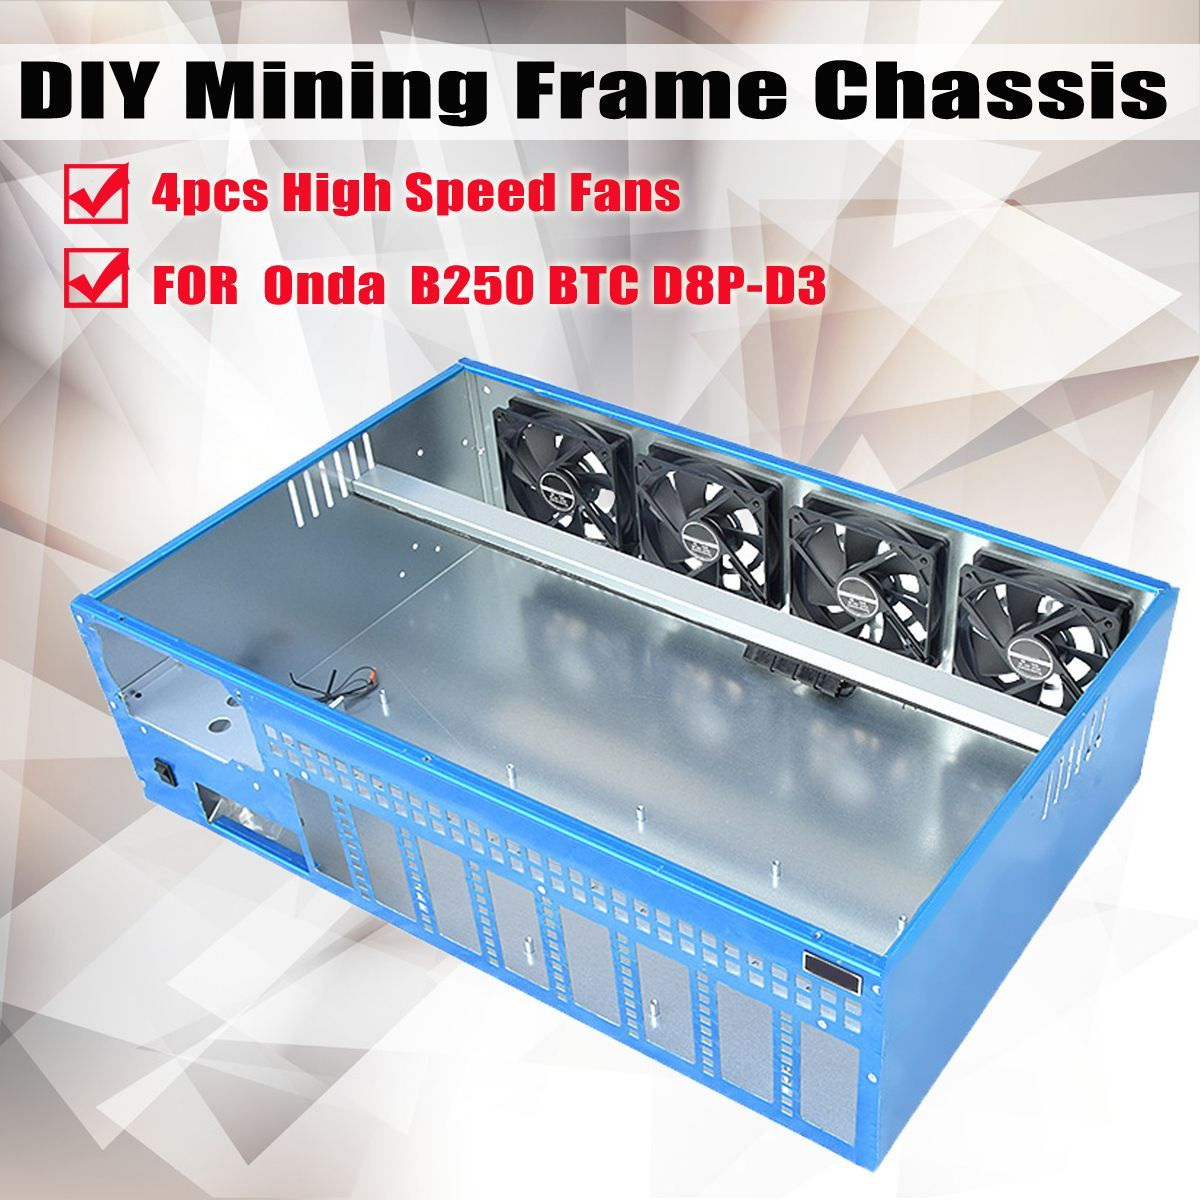 8GPU DIY Mining Frame Chassis With 4 fans For Onda B250 BTC D8P-D3 Motherboard